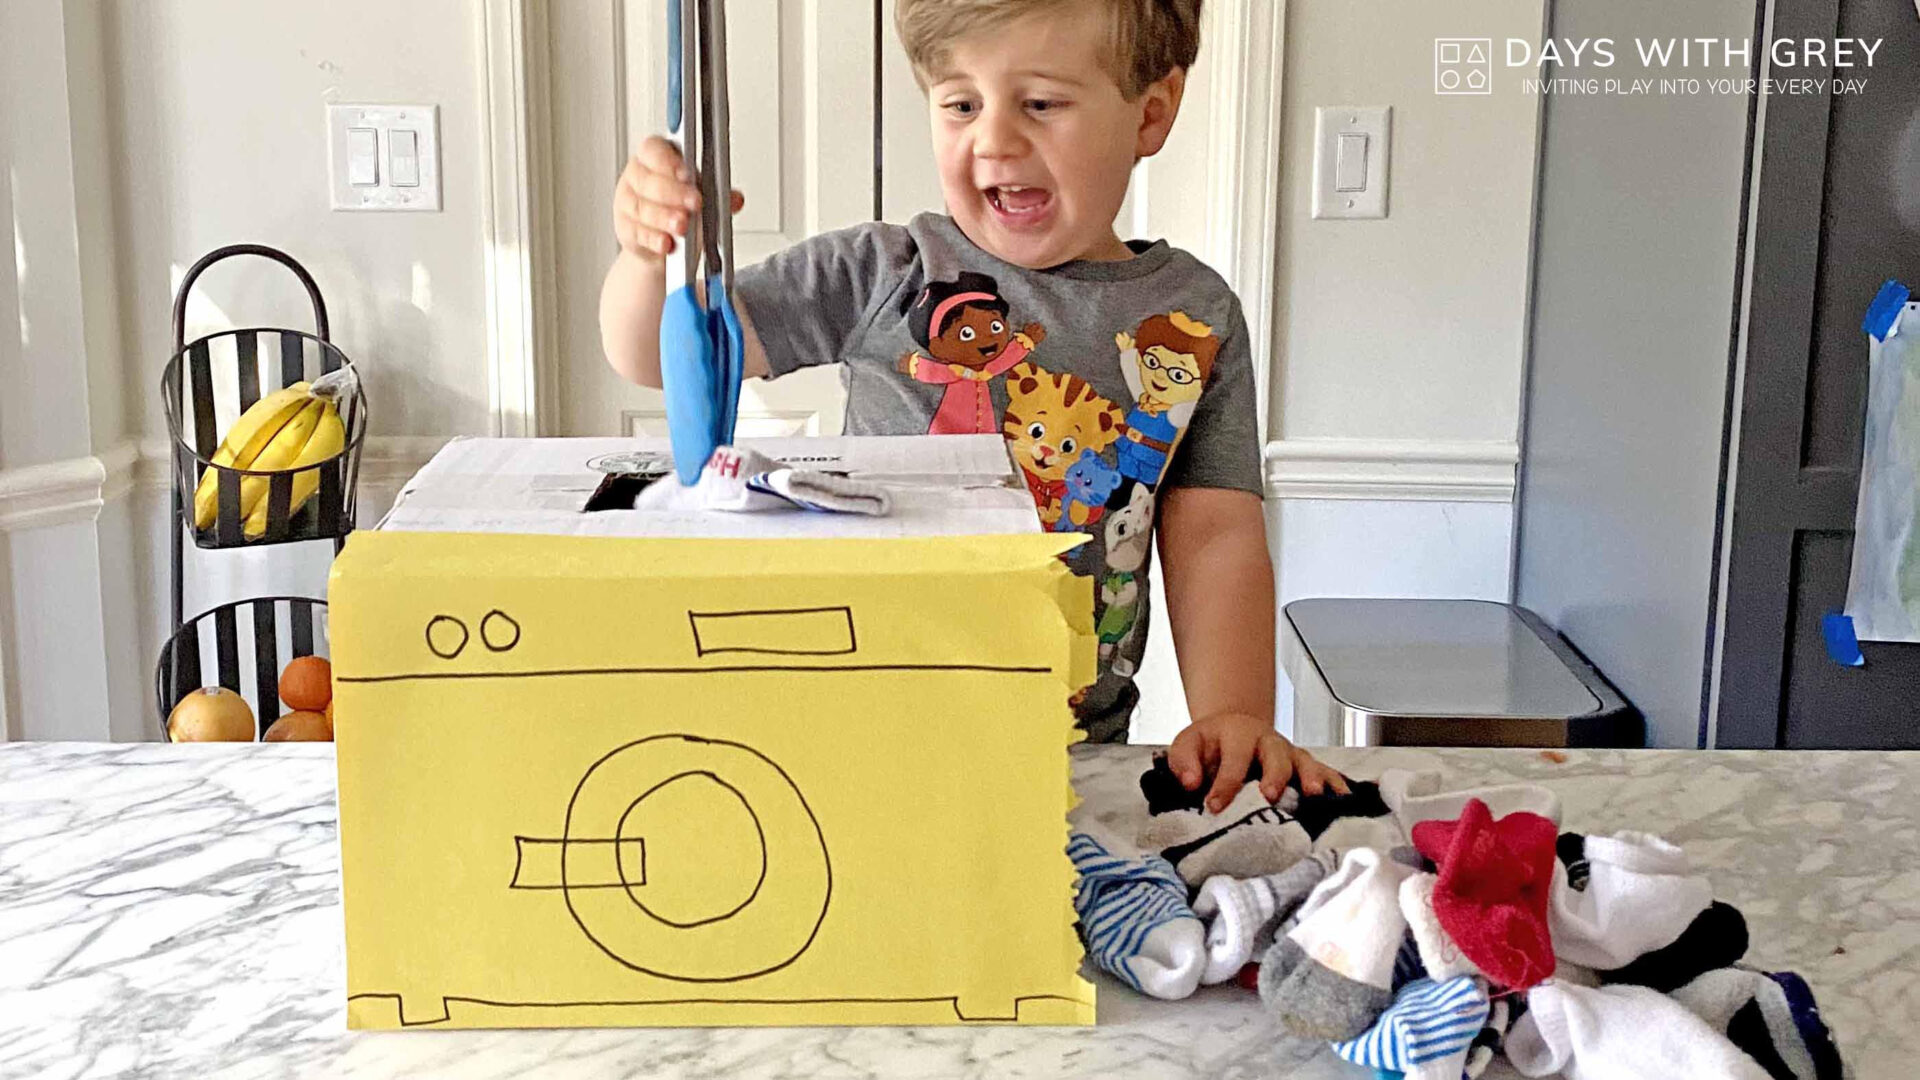 A young boy puts socks into a cardboard washing machine using tongs for a story on toddler activities you can set up the night before